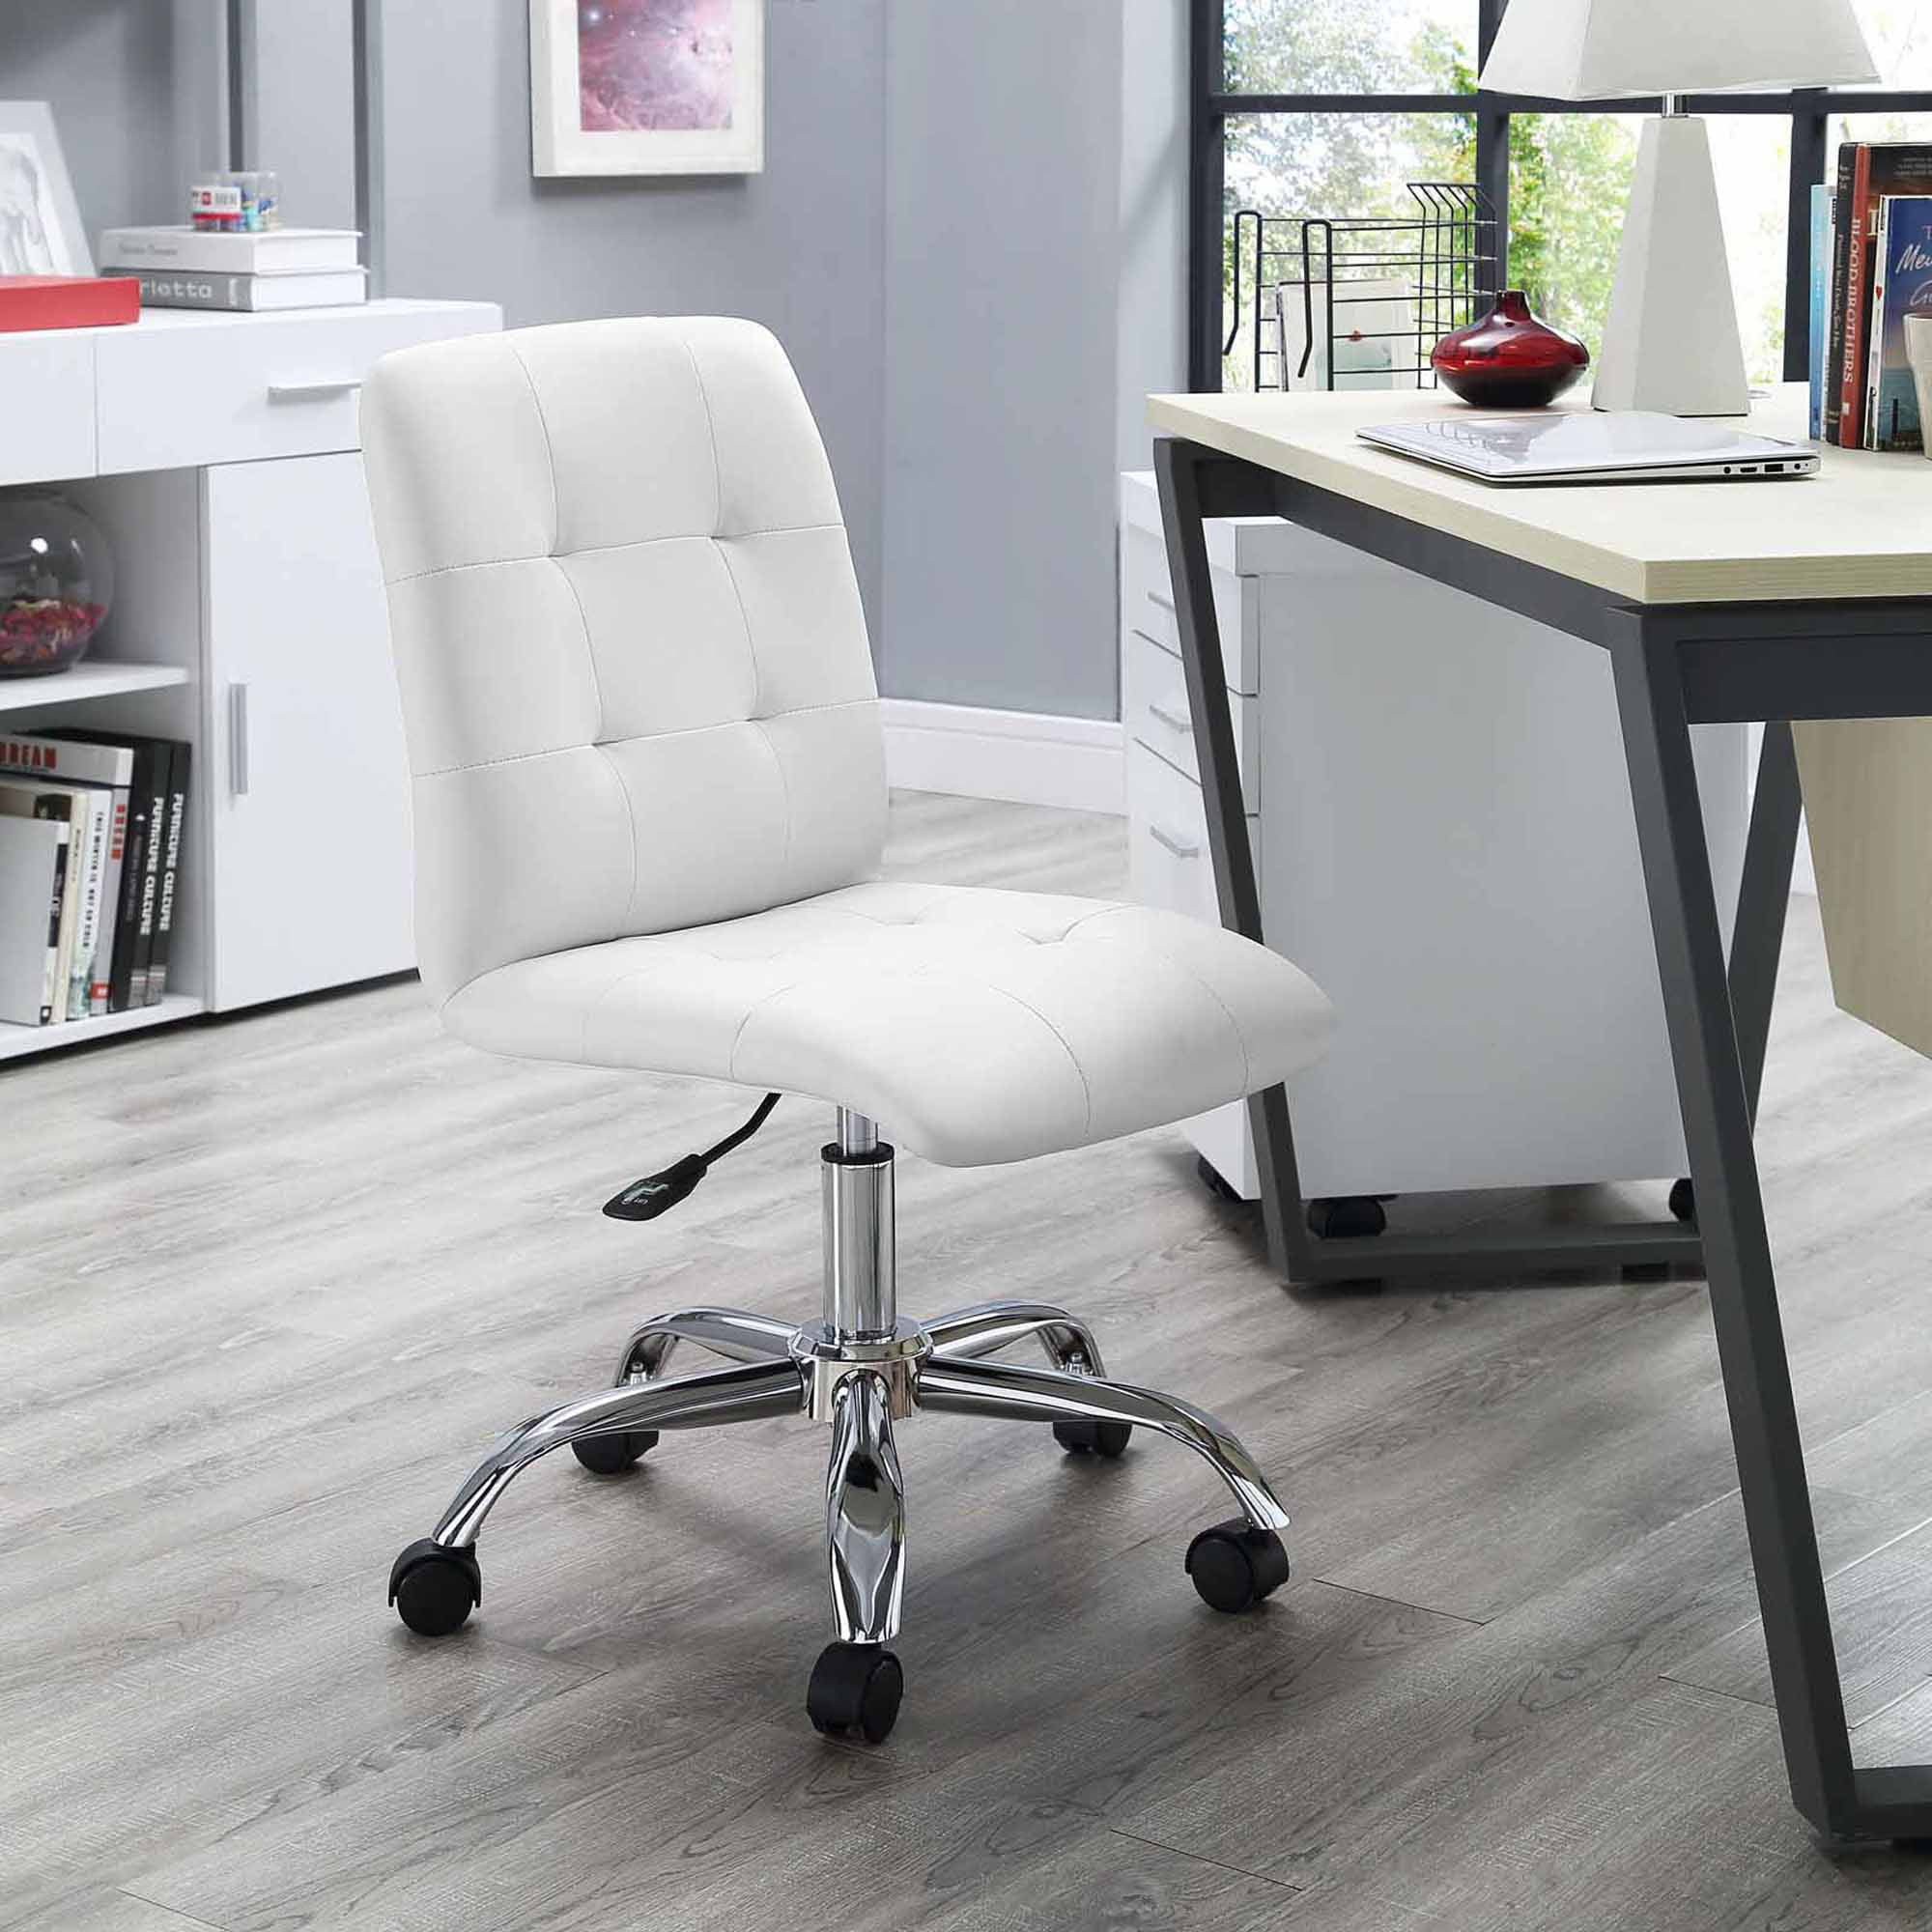 with seen in chiar as the chair plus and images armless desk black gallery upholstered white modern most armles home stacking well casters office chairs furniture brown awesome